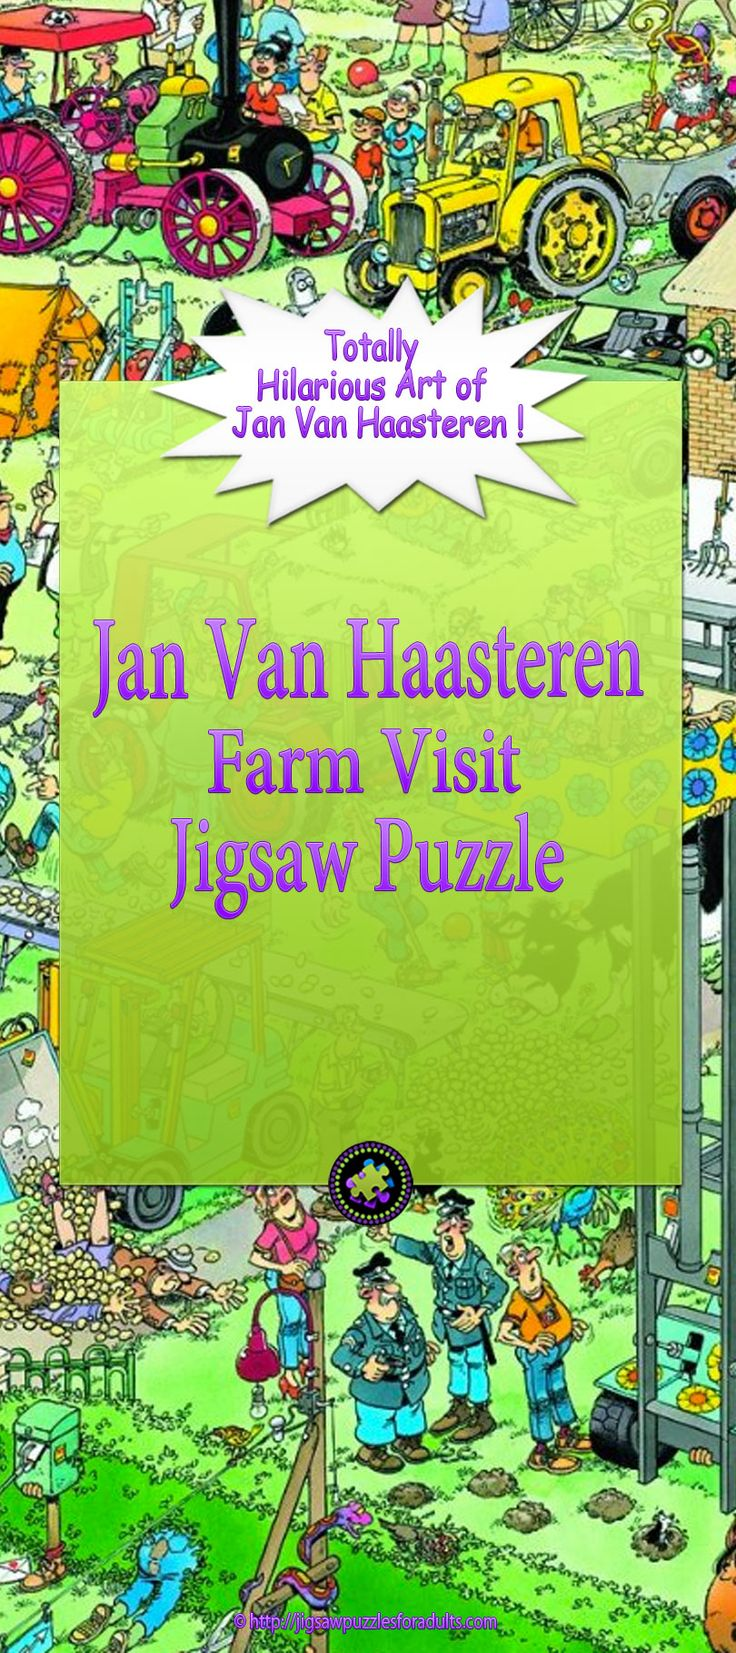 If you LOVE Jan Van Haasteren illustrations and artwork and you enjoy working on Jigsaw puzzles you'll want to checkout this Jan Van Haasteren Farm Visit jigsaw puzzle for adults. We loved working on this 3000 piece puzzle and when finished it measured 48 inches by 33.5 inches. It's a challenging jigsaw puzzle but it's a whole lot of fun.